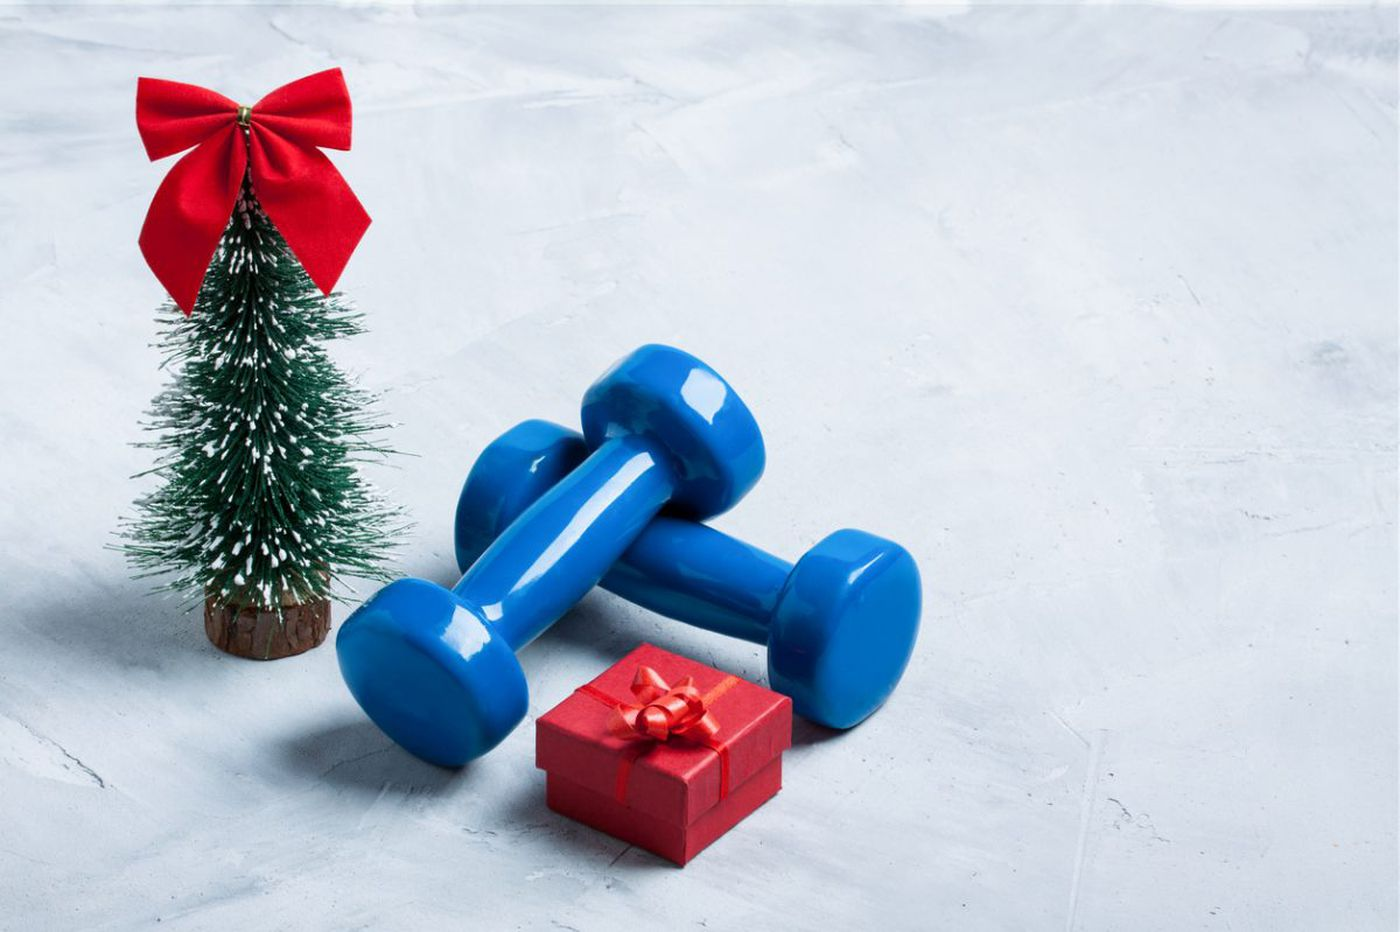 12 days of wellness: How to make your health a priority this holiday season